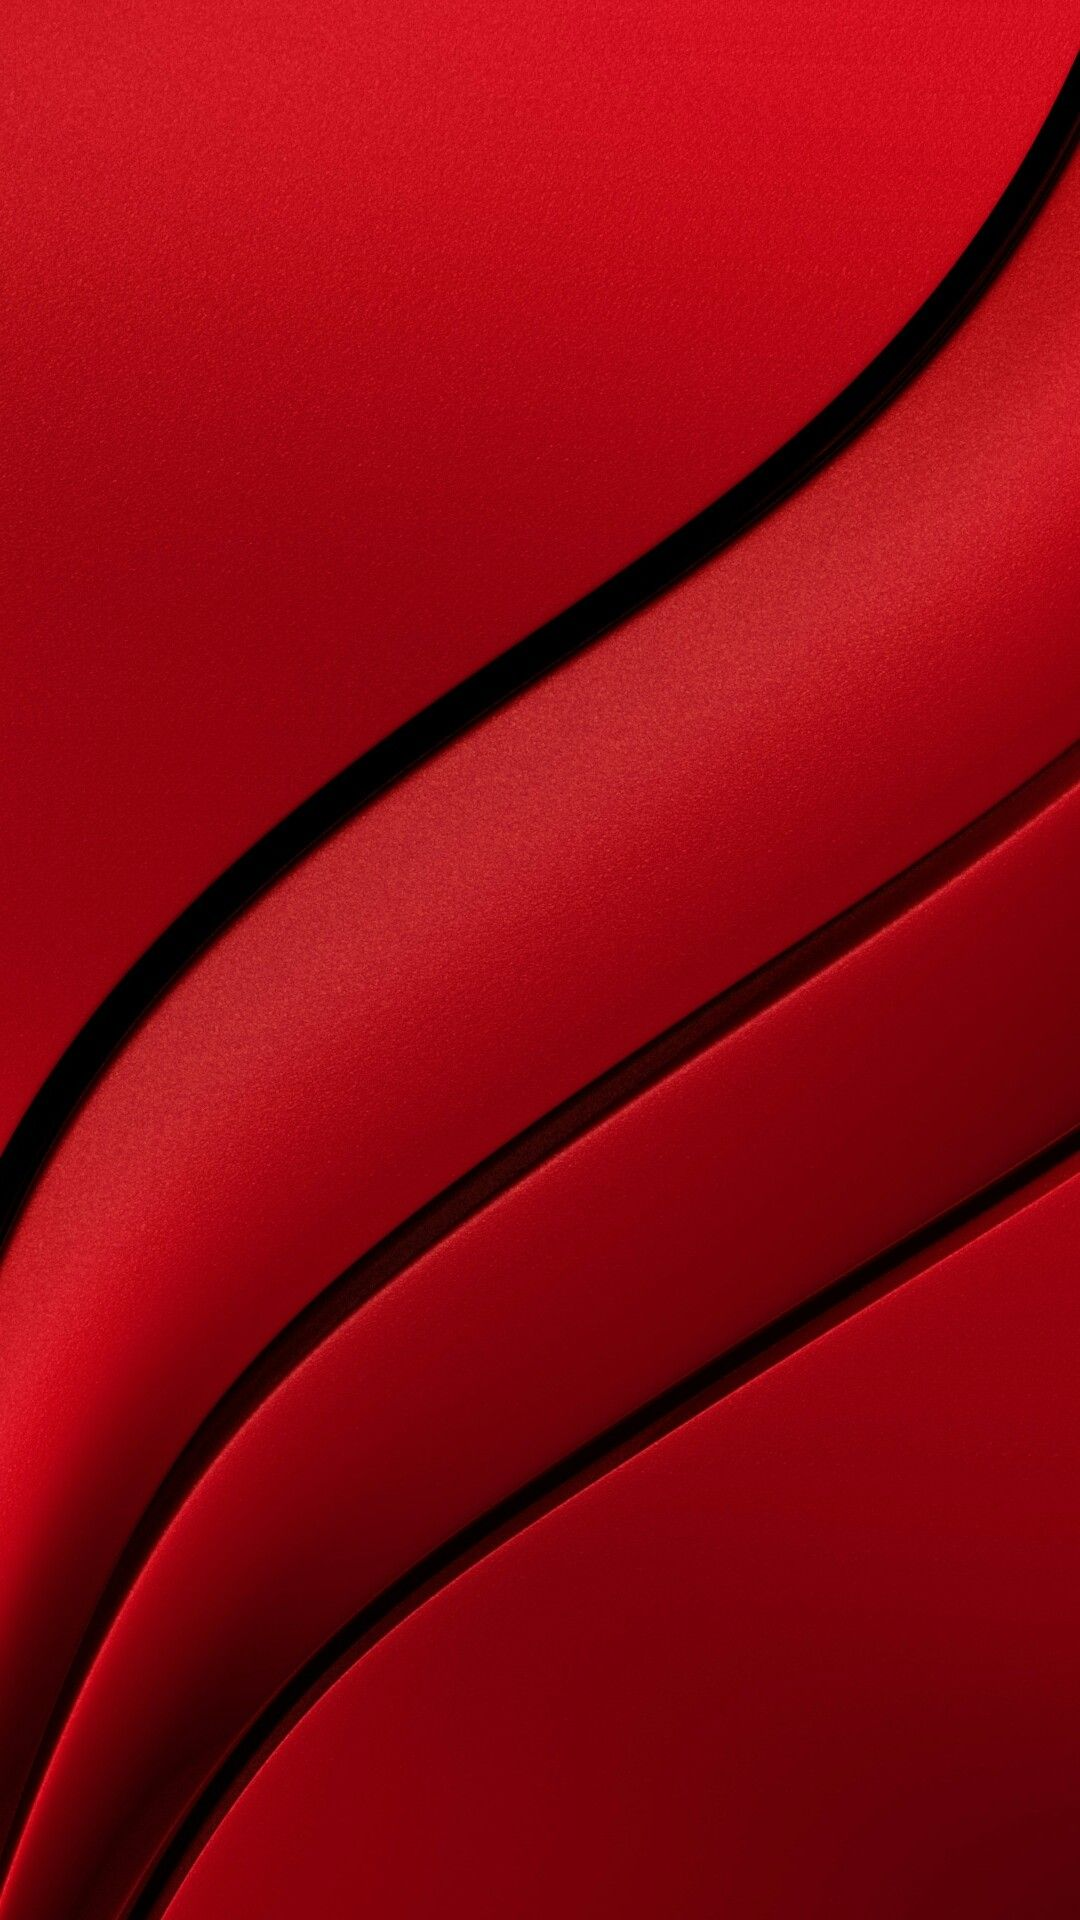 Background Wallpaper Android Wallpaper Red Wallpaper Black Phone Wallpaper